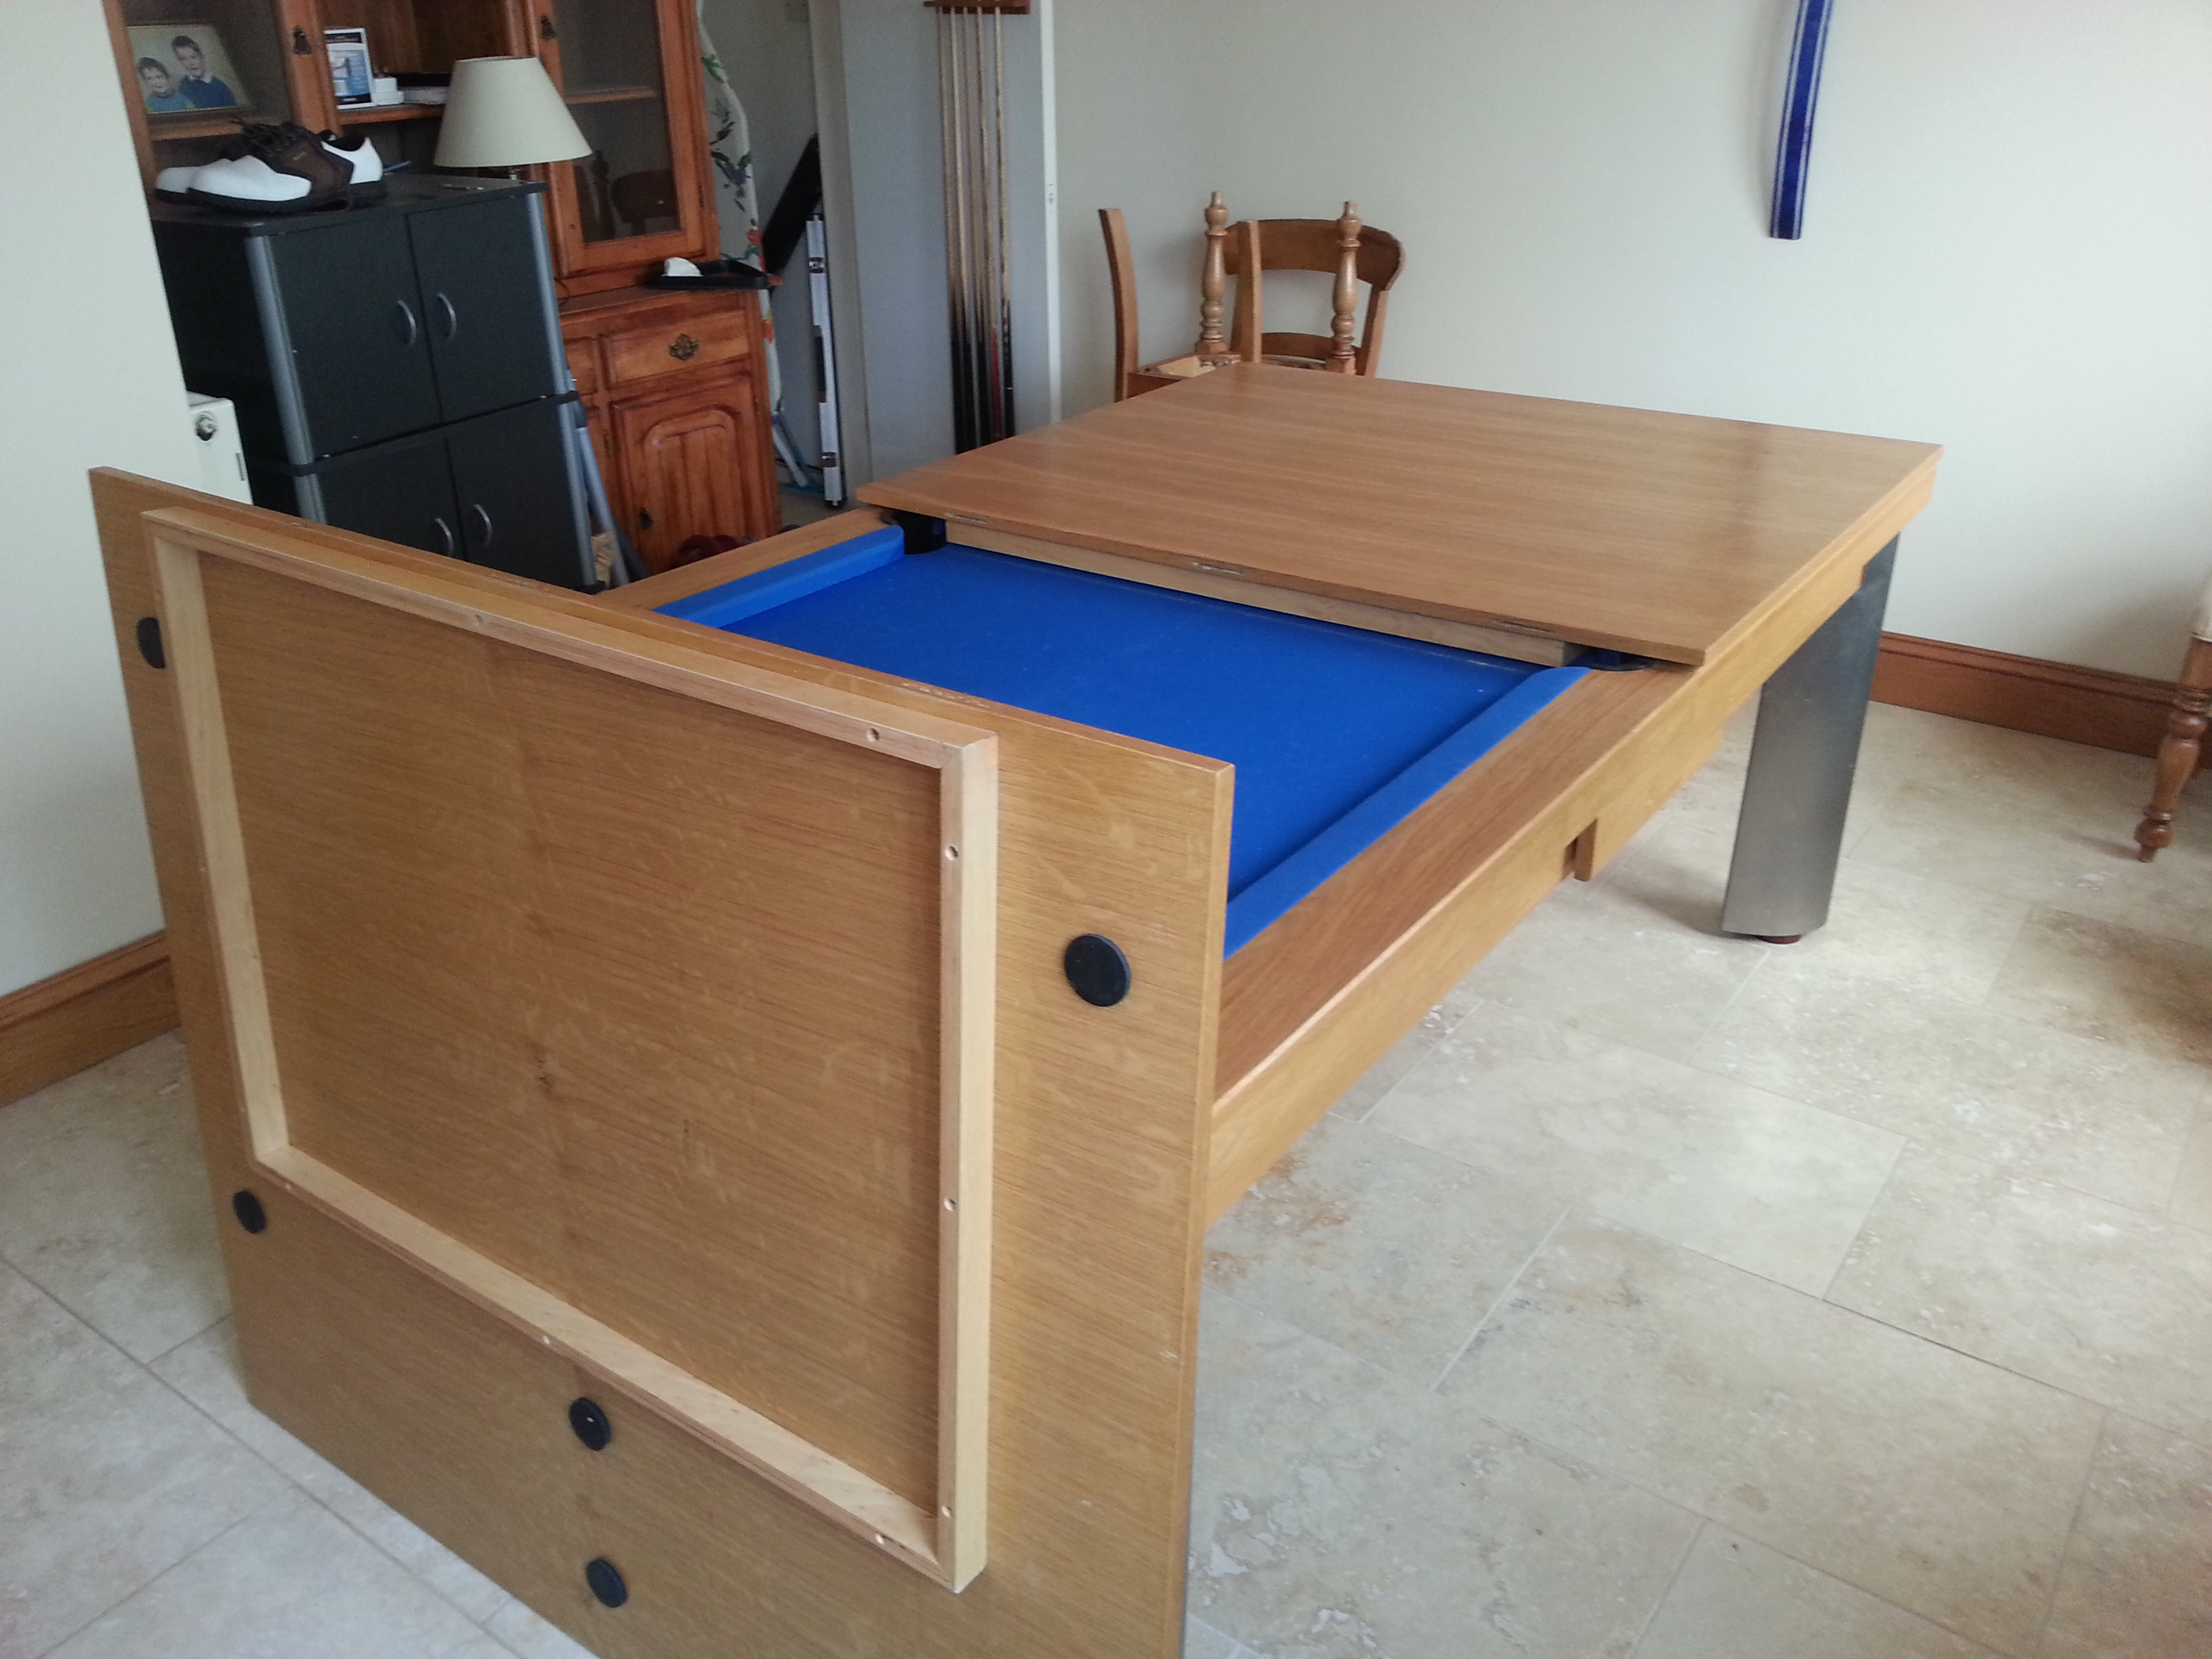 Storing Seating From A Pool Table Dining Table Combo - Combination pool table and dining table